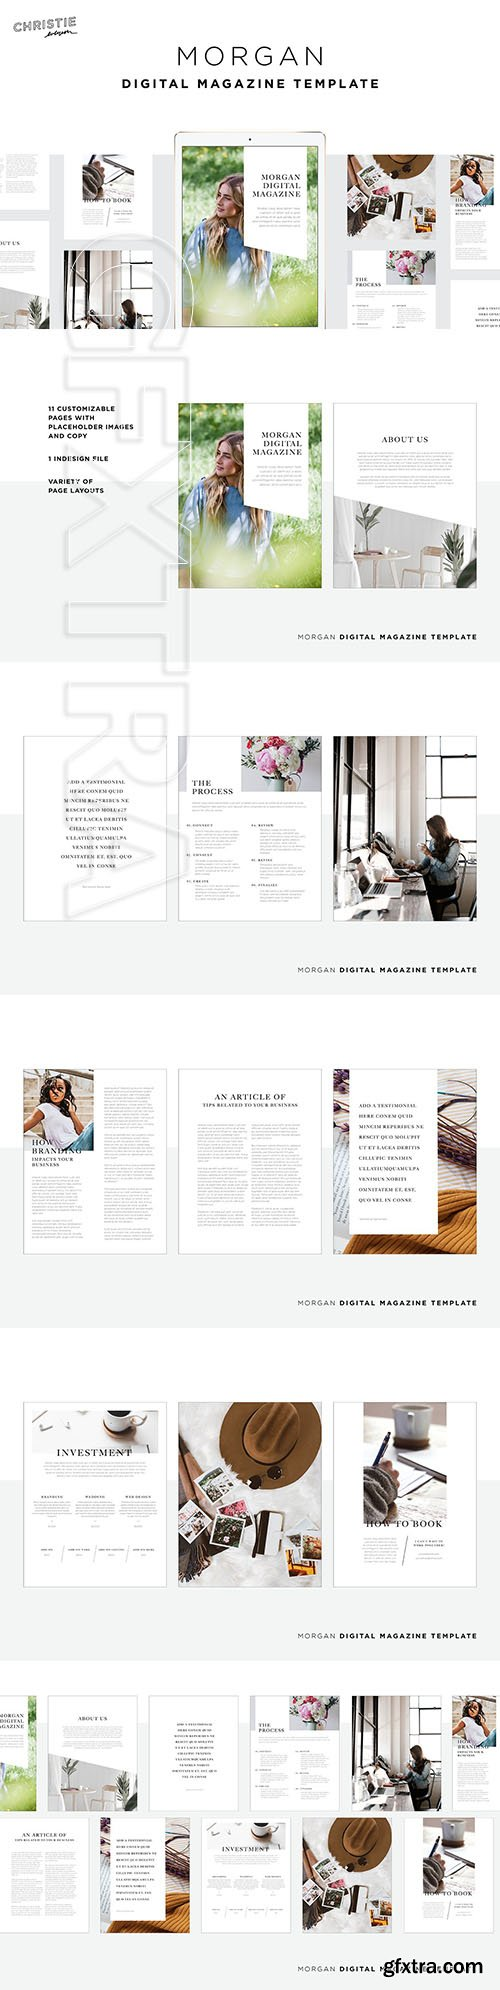 CreativeMarket - Morgan Digital Magazine Template 3736883